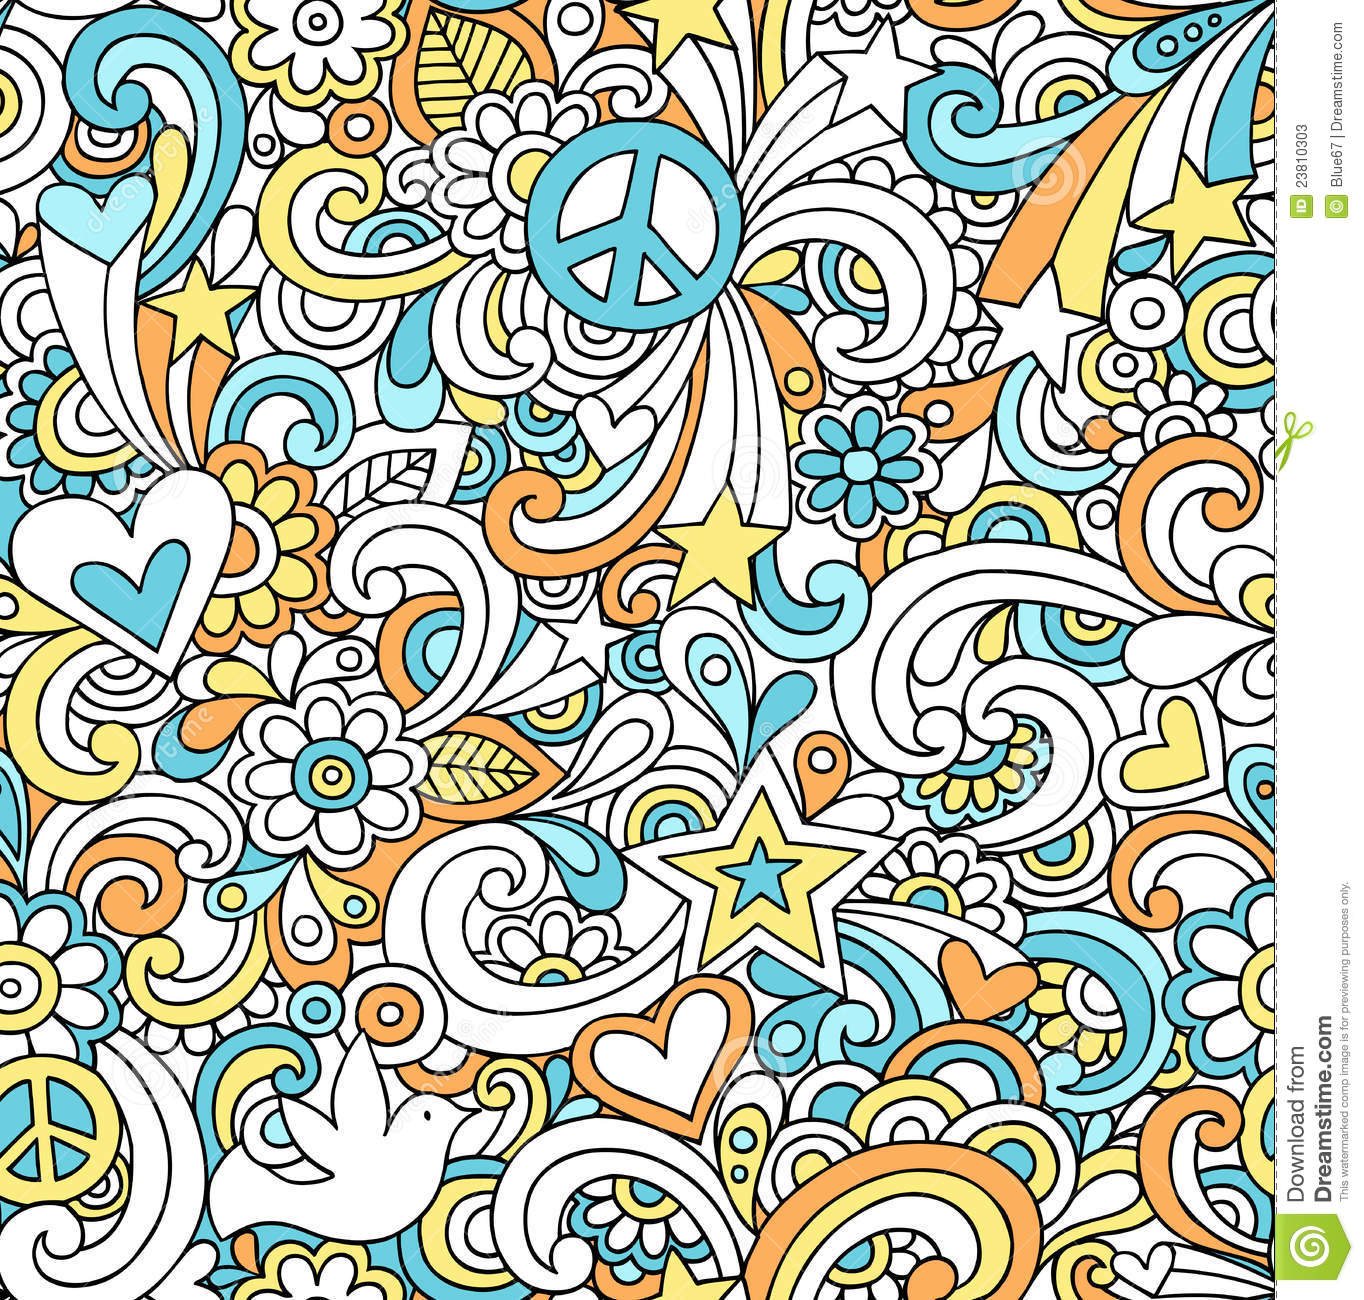 Wallpaper Doodle Cute Psychedelic Peace Doodles Seamless Pattern Stock Photos